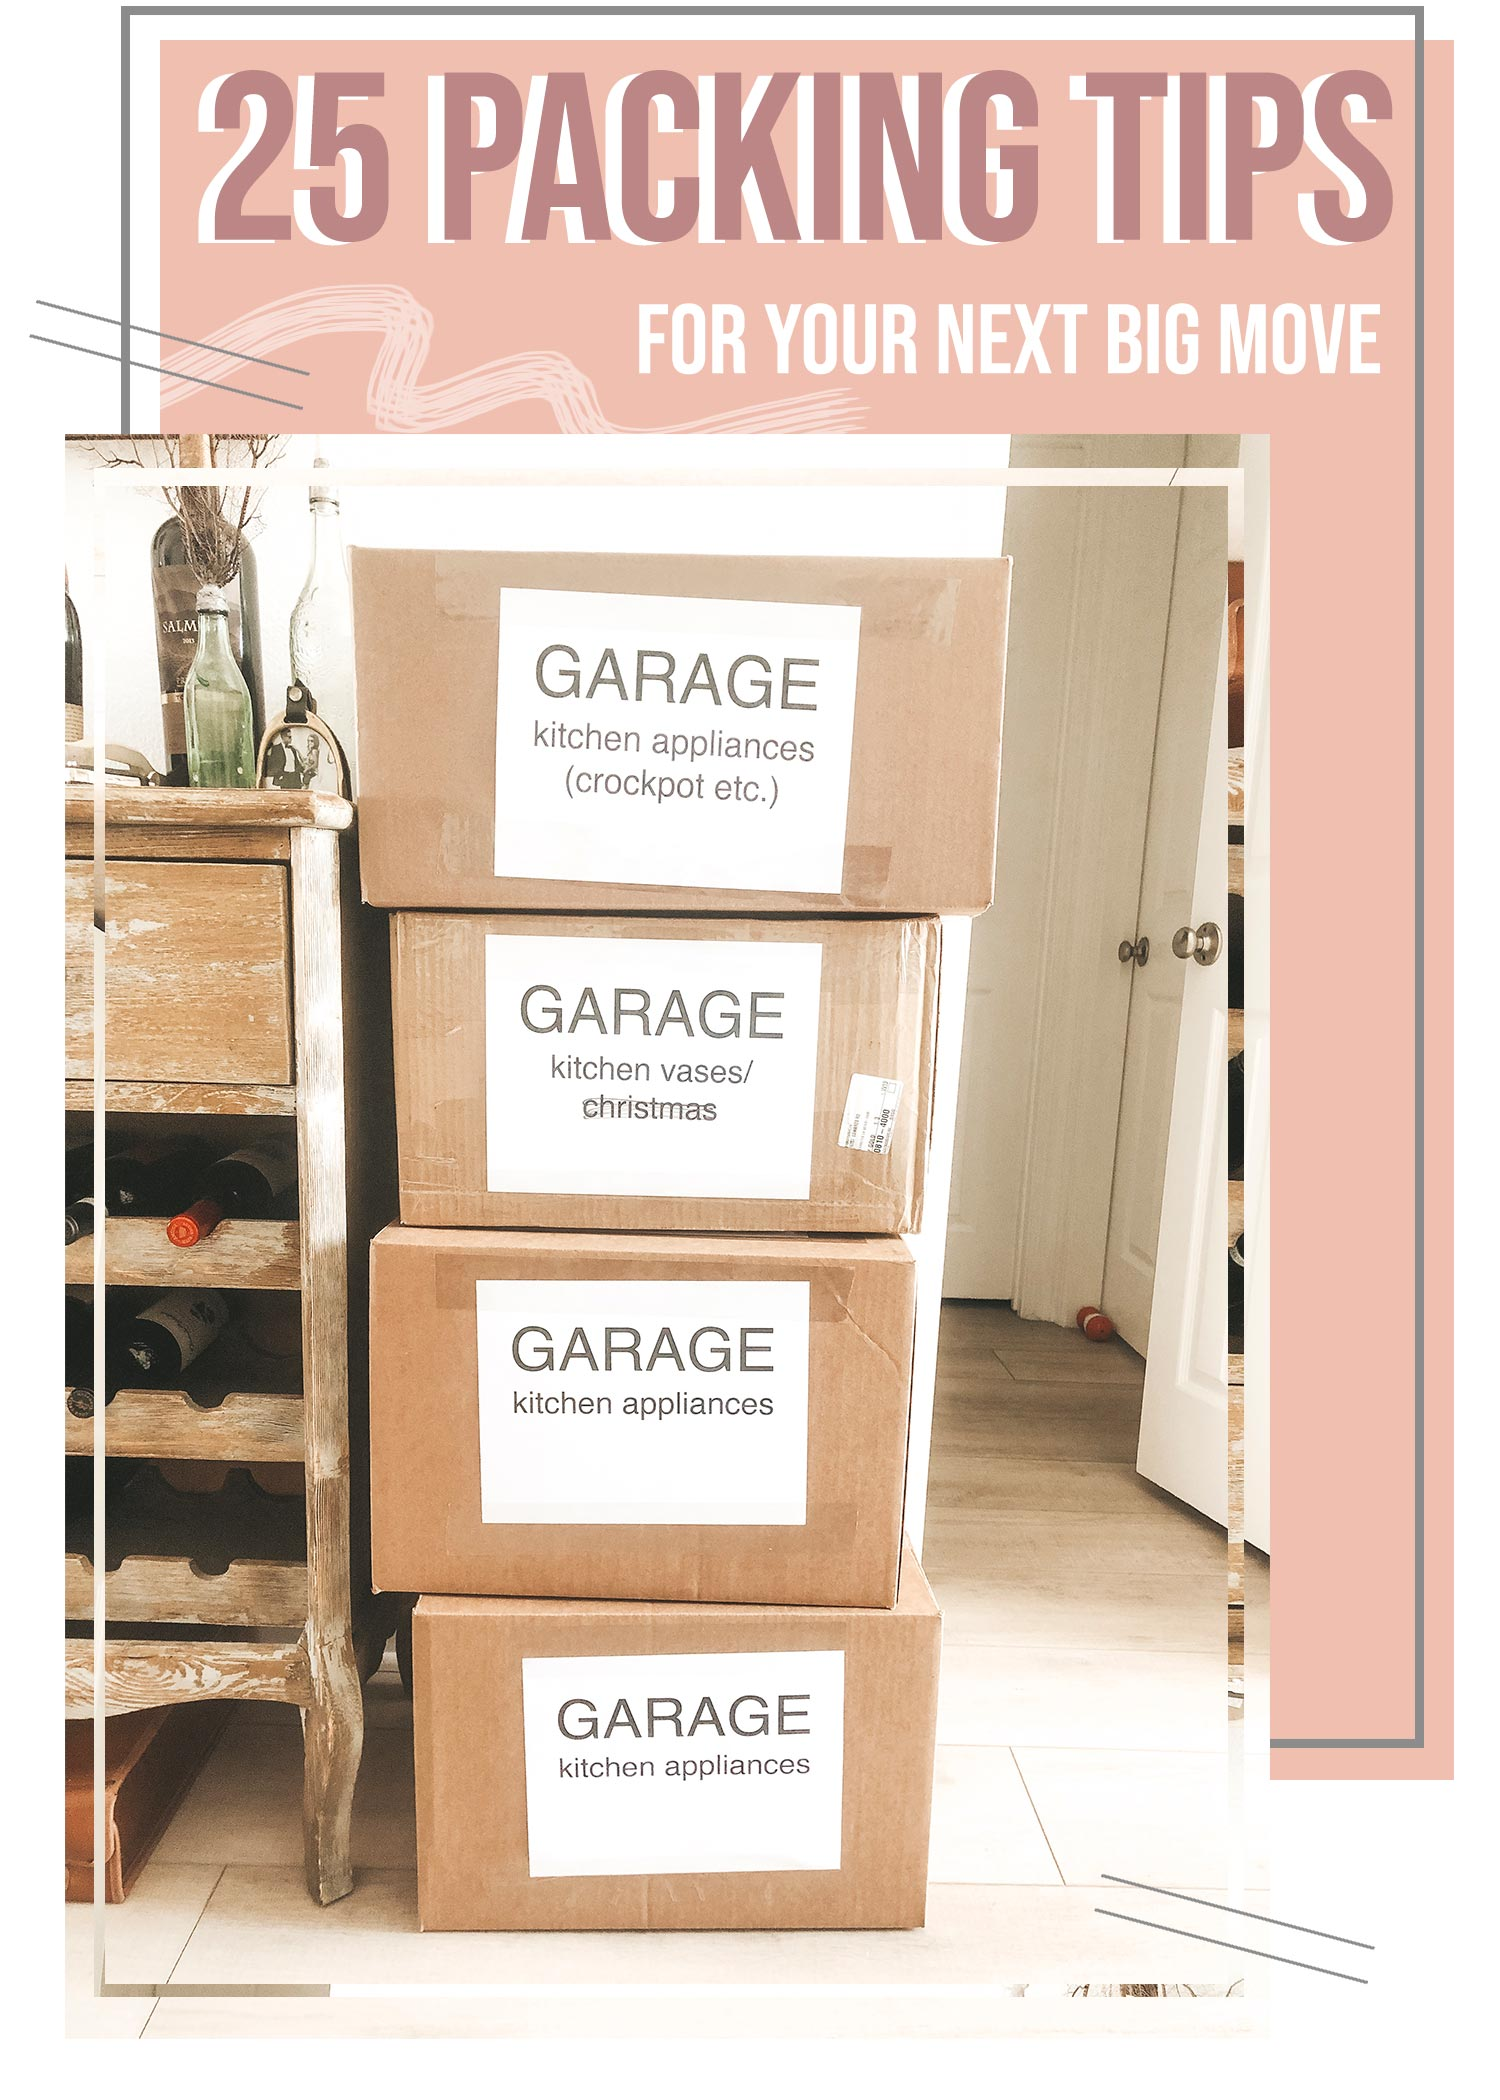 Packing tips for a big move.  Moving with a toddler or baby.  Packing tips and tricks for pods, moving cross-country, etc.